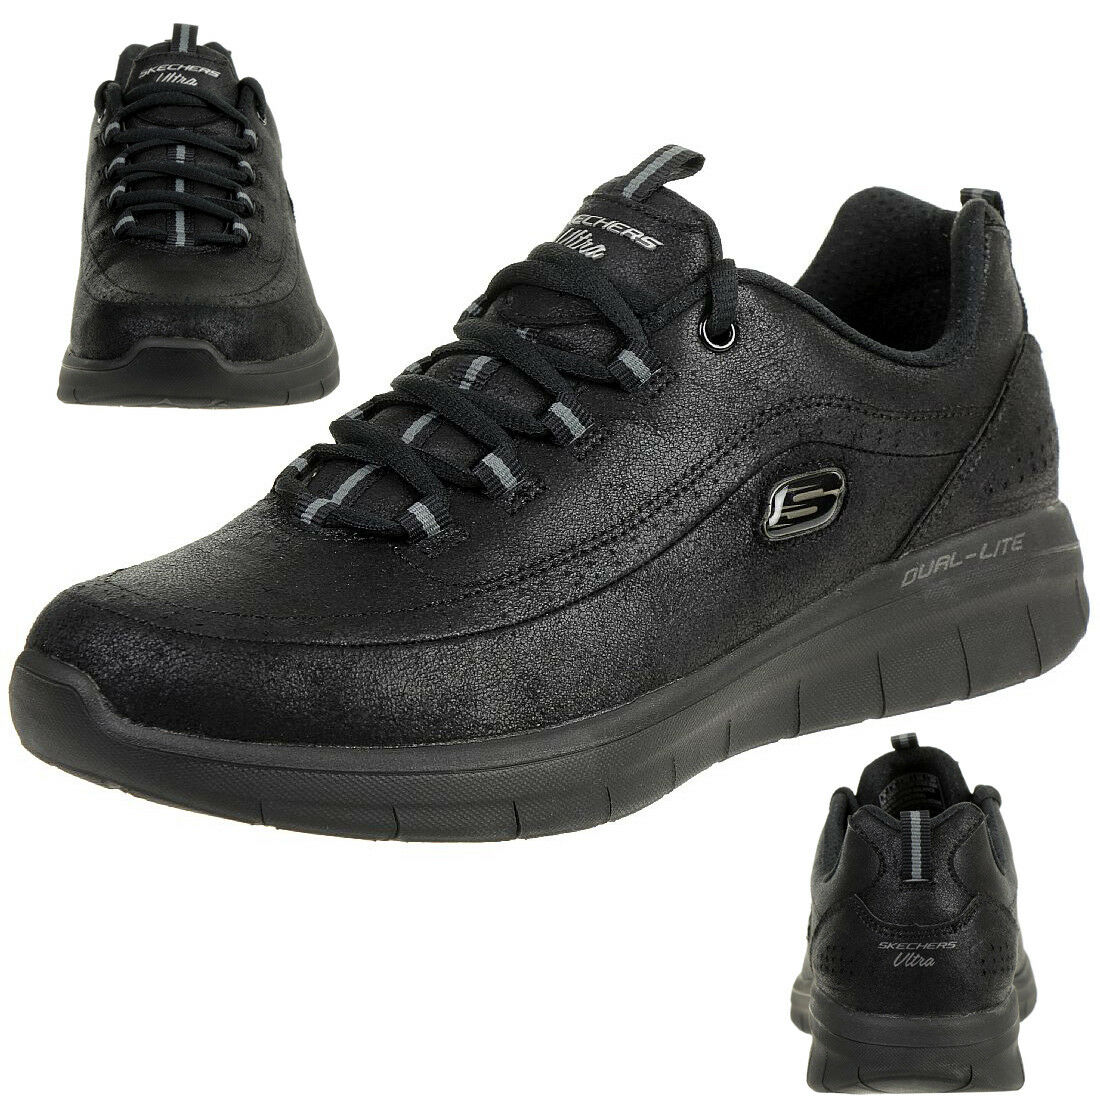 Skechers Synergie 2.0 Comfy Up Chaussures Fitness Dame Mousse à Mémoire BBK